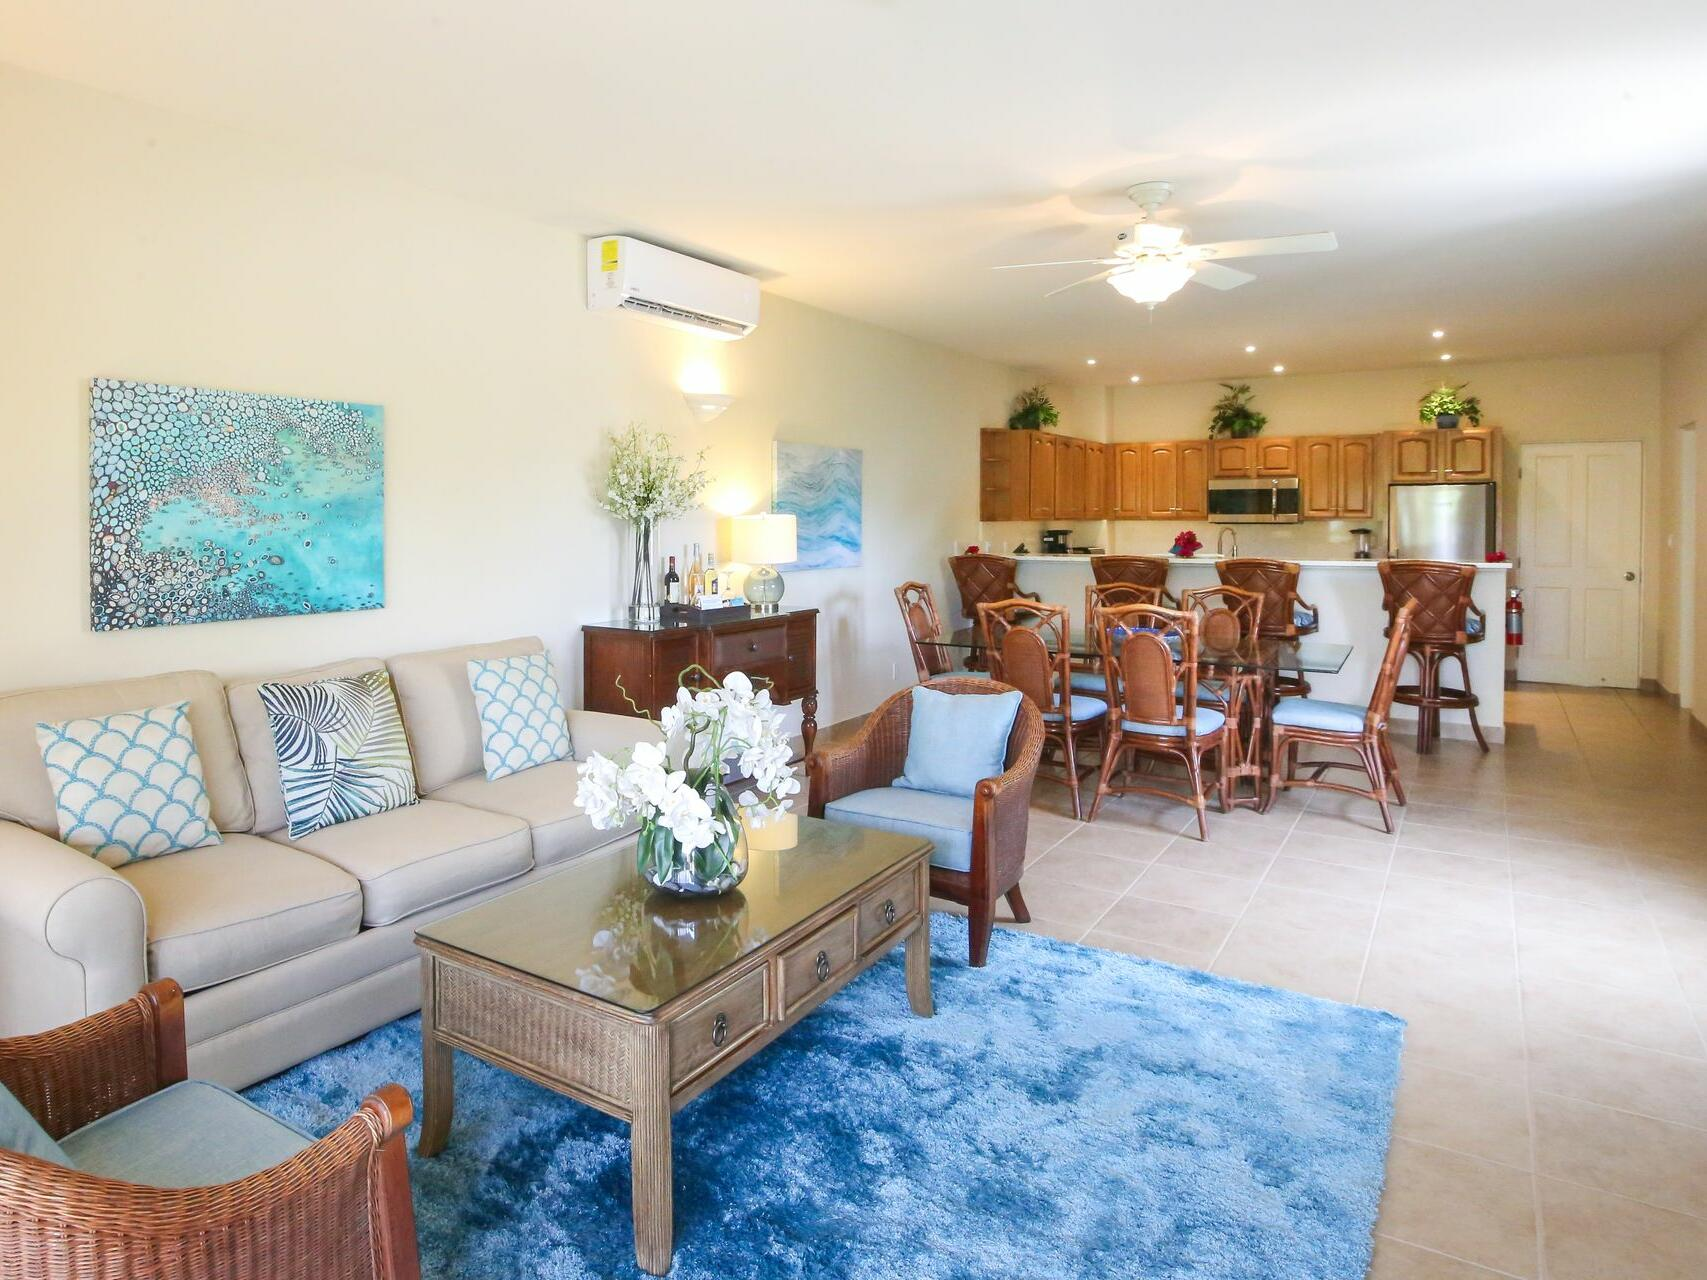 Living room of 3 Bedroom Bungalow at Windsong Resort On The Reef